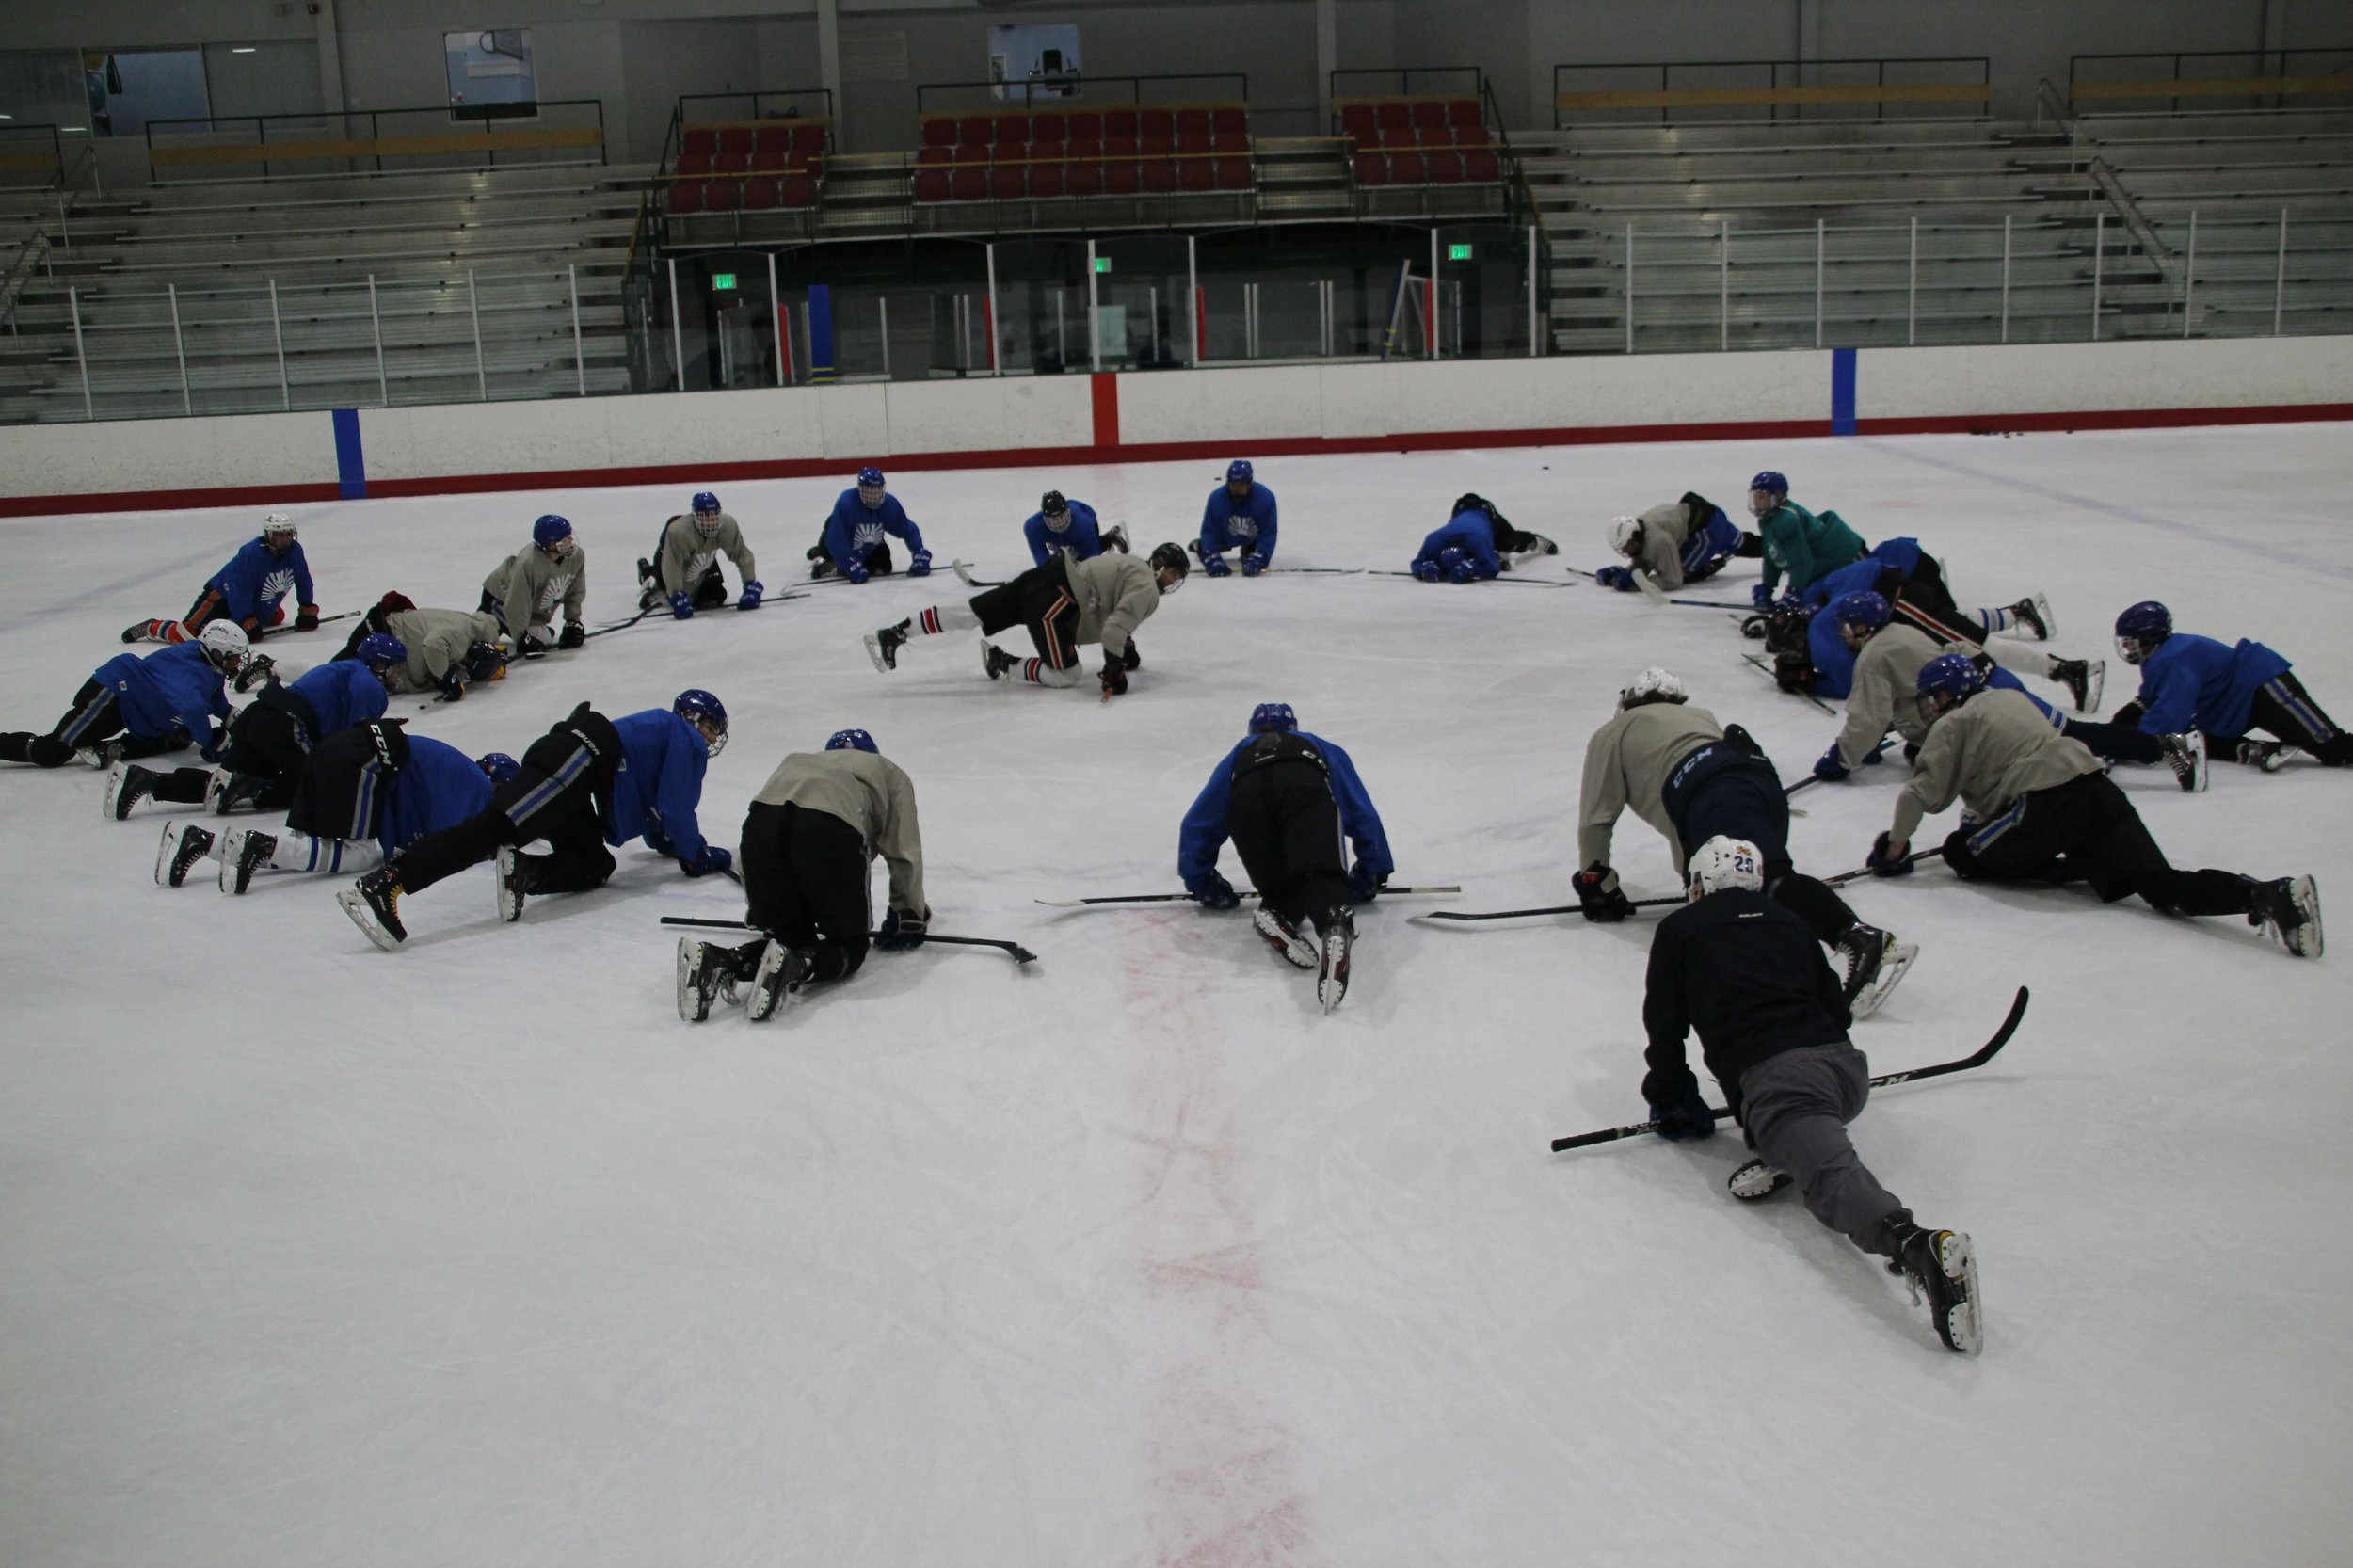 Contact to Join small group lessons! - LESSONS AT COLUMBIA ICE RINK Monday 6:00AM-7:00AM and 7:00AM-8:00AMTuesday 10:15AM-11:00AM and 11:00AM-11:45AMThursday 10:15-11:00AM and 11:00-11:45AM